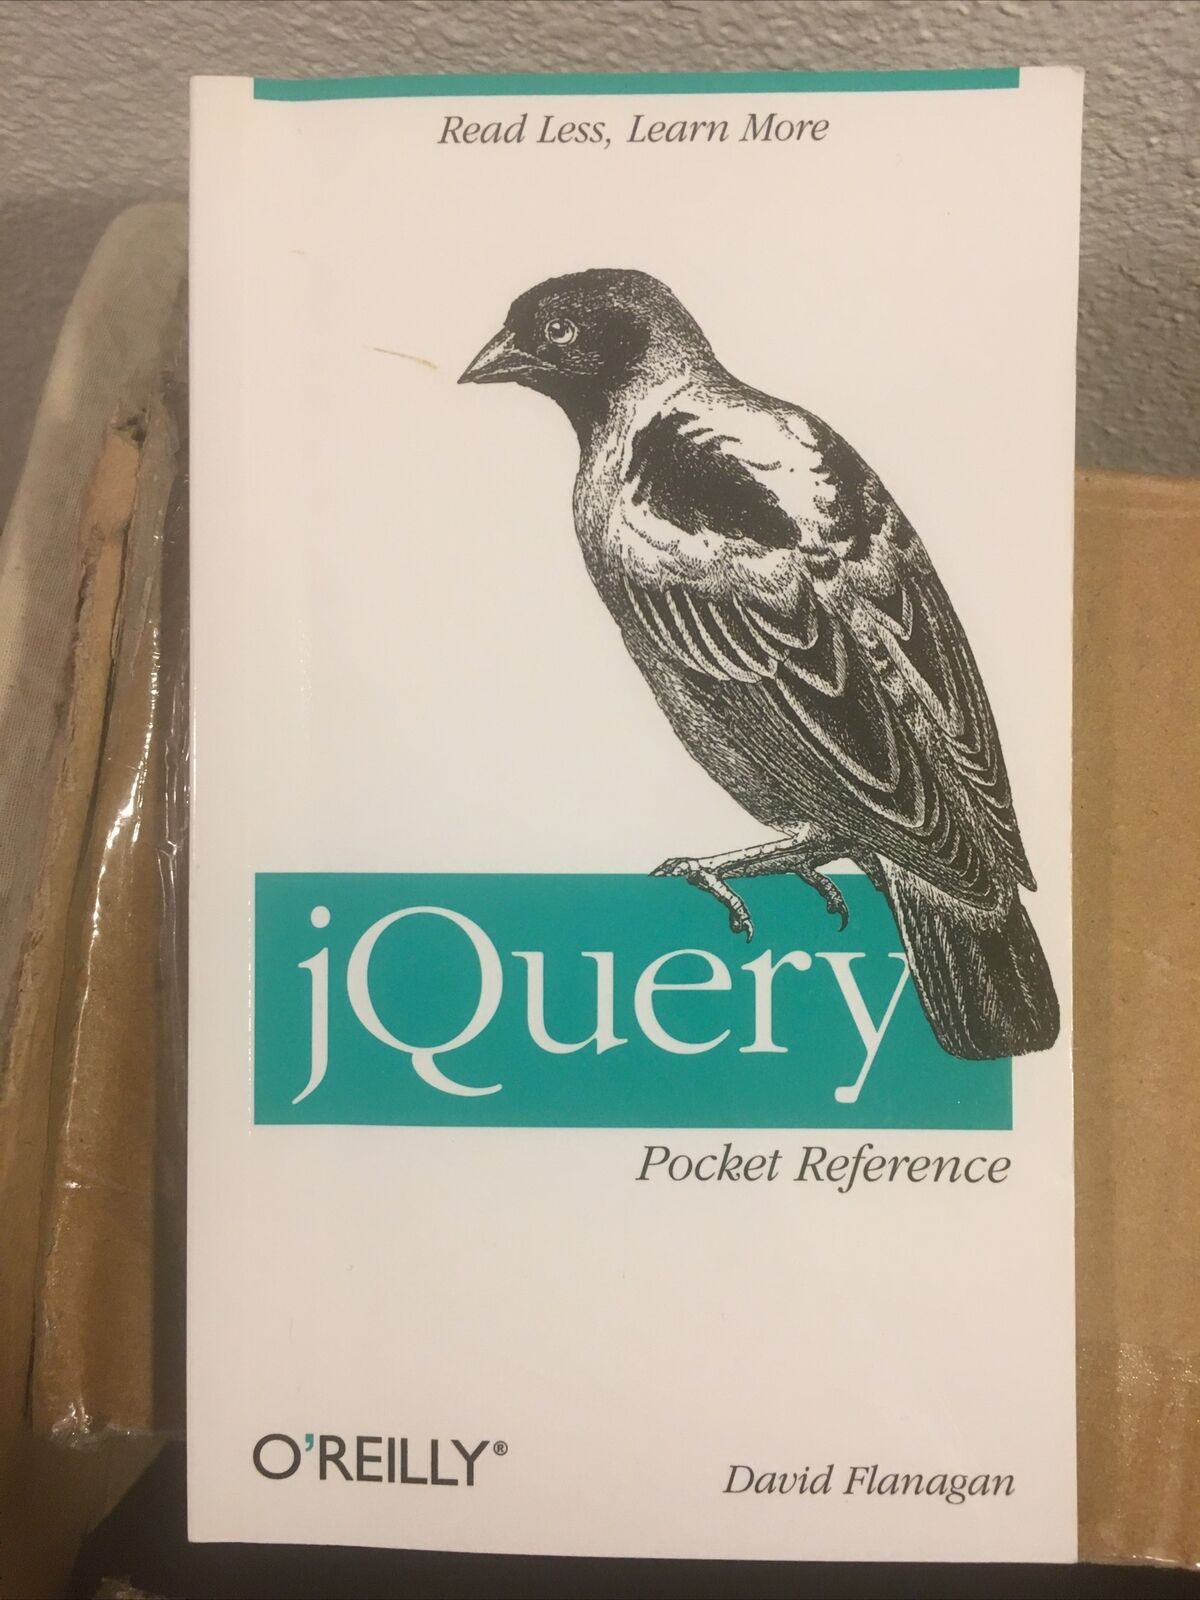 Jquery pocket reference javascript design manual |